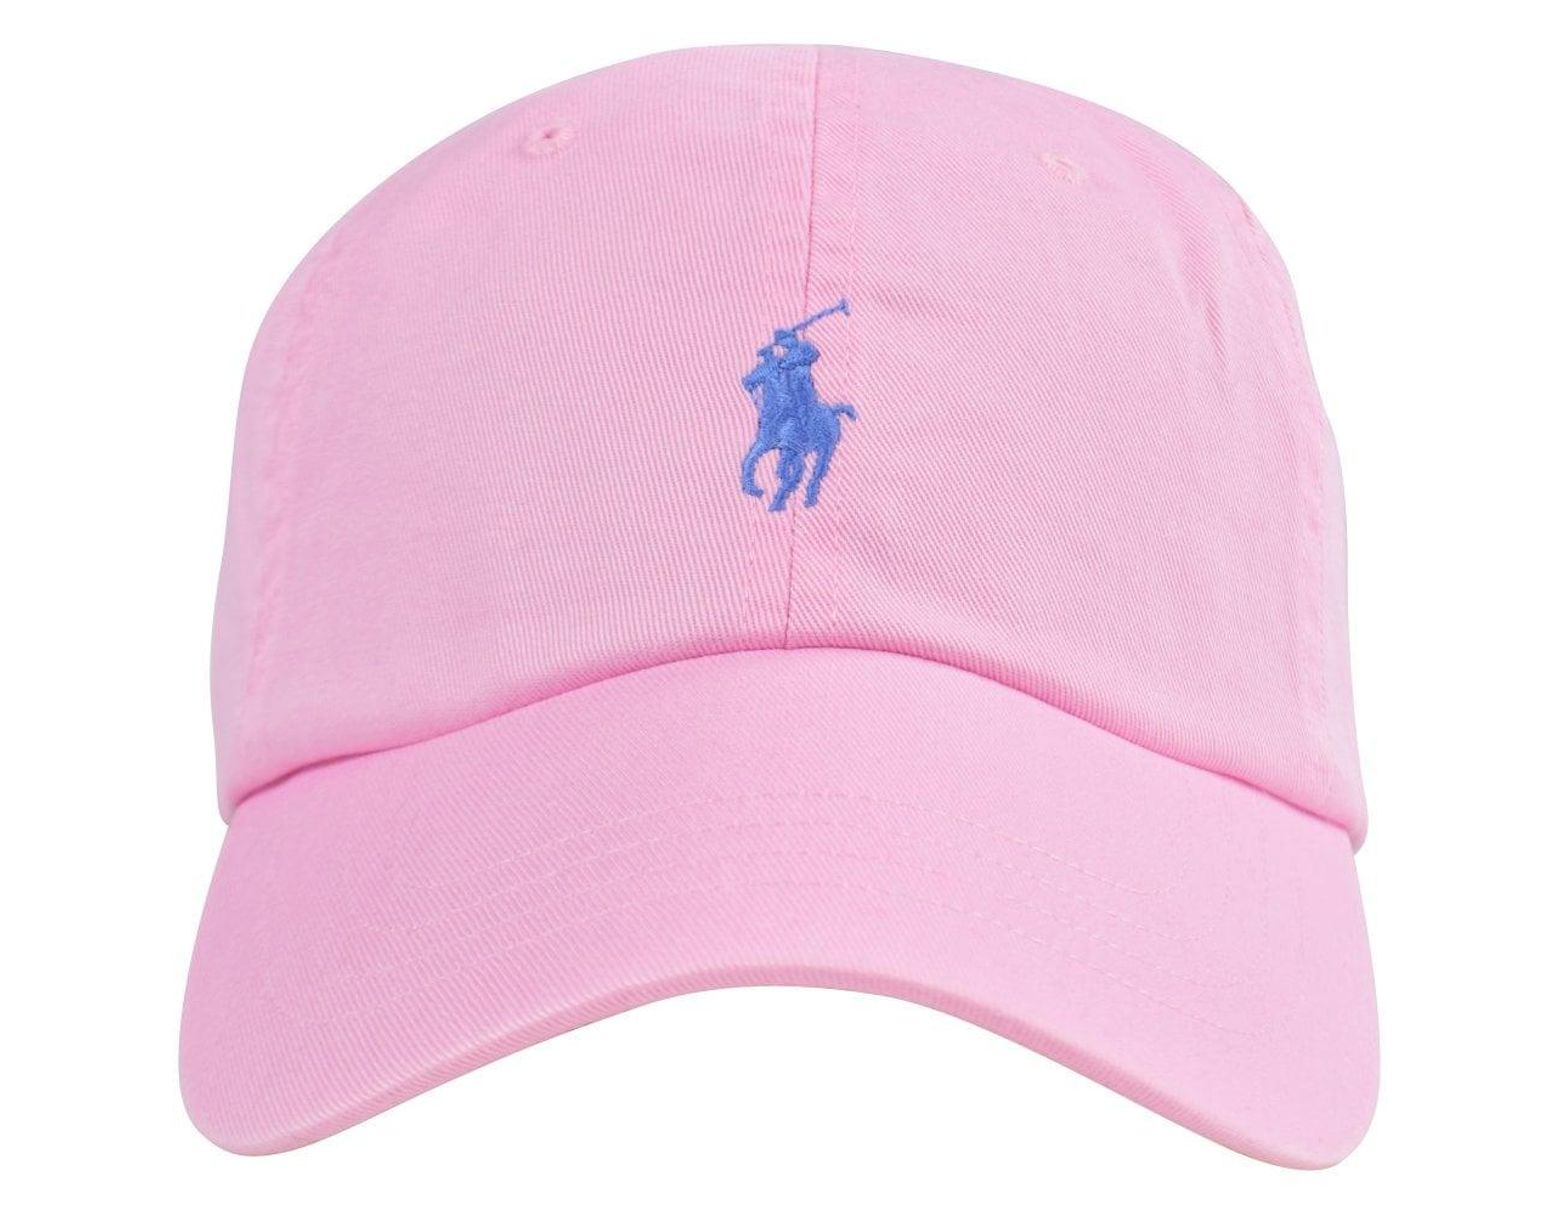 b87a5b80f7a666 Polo Ralph Lauren Pink Polo Baseball Cap in Pink for Men - Save 31% - Lyst